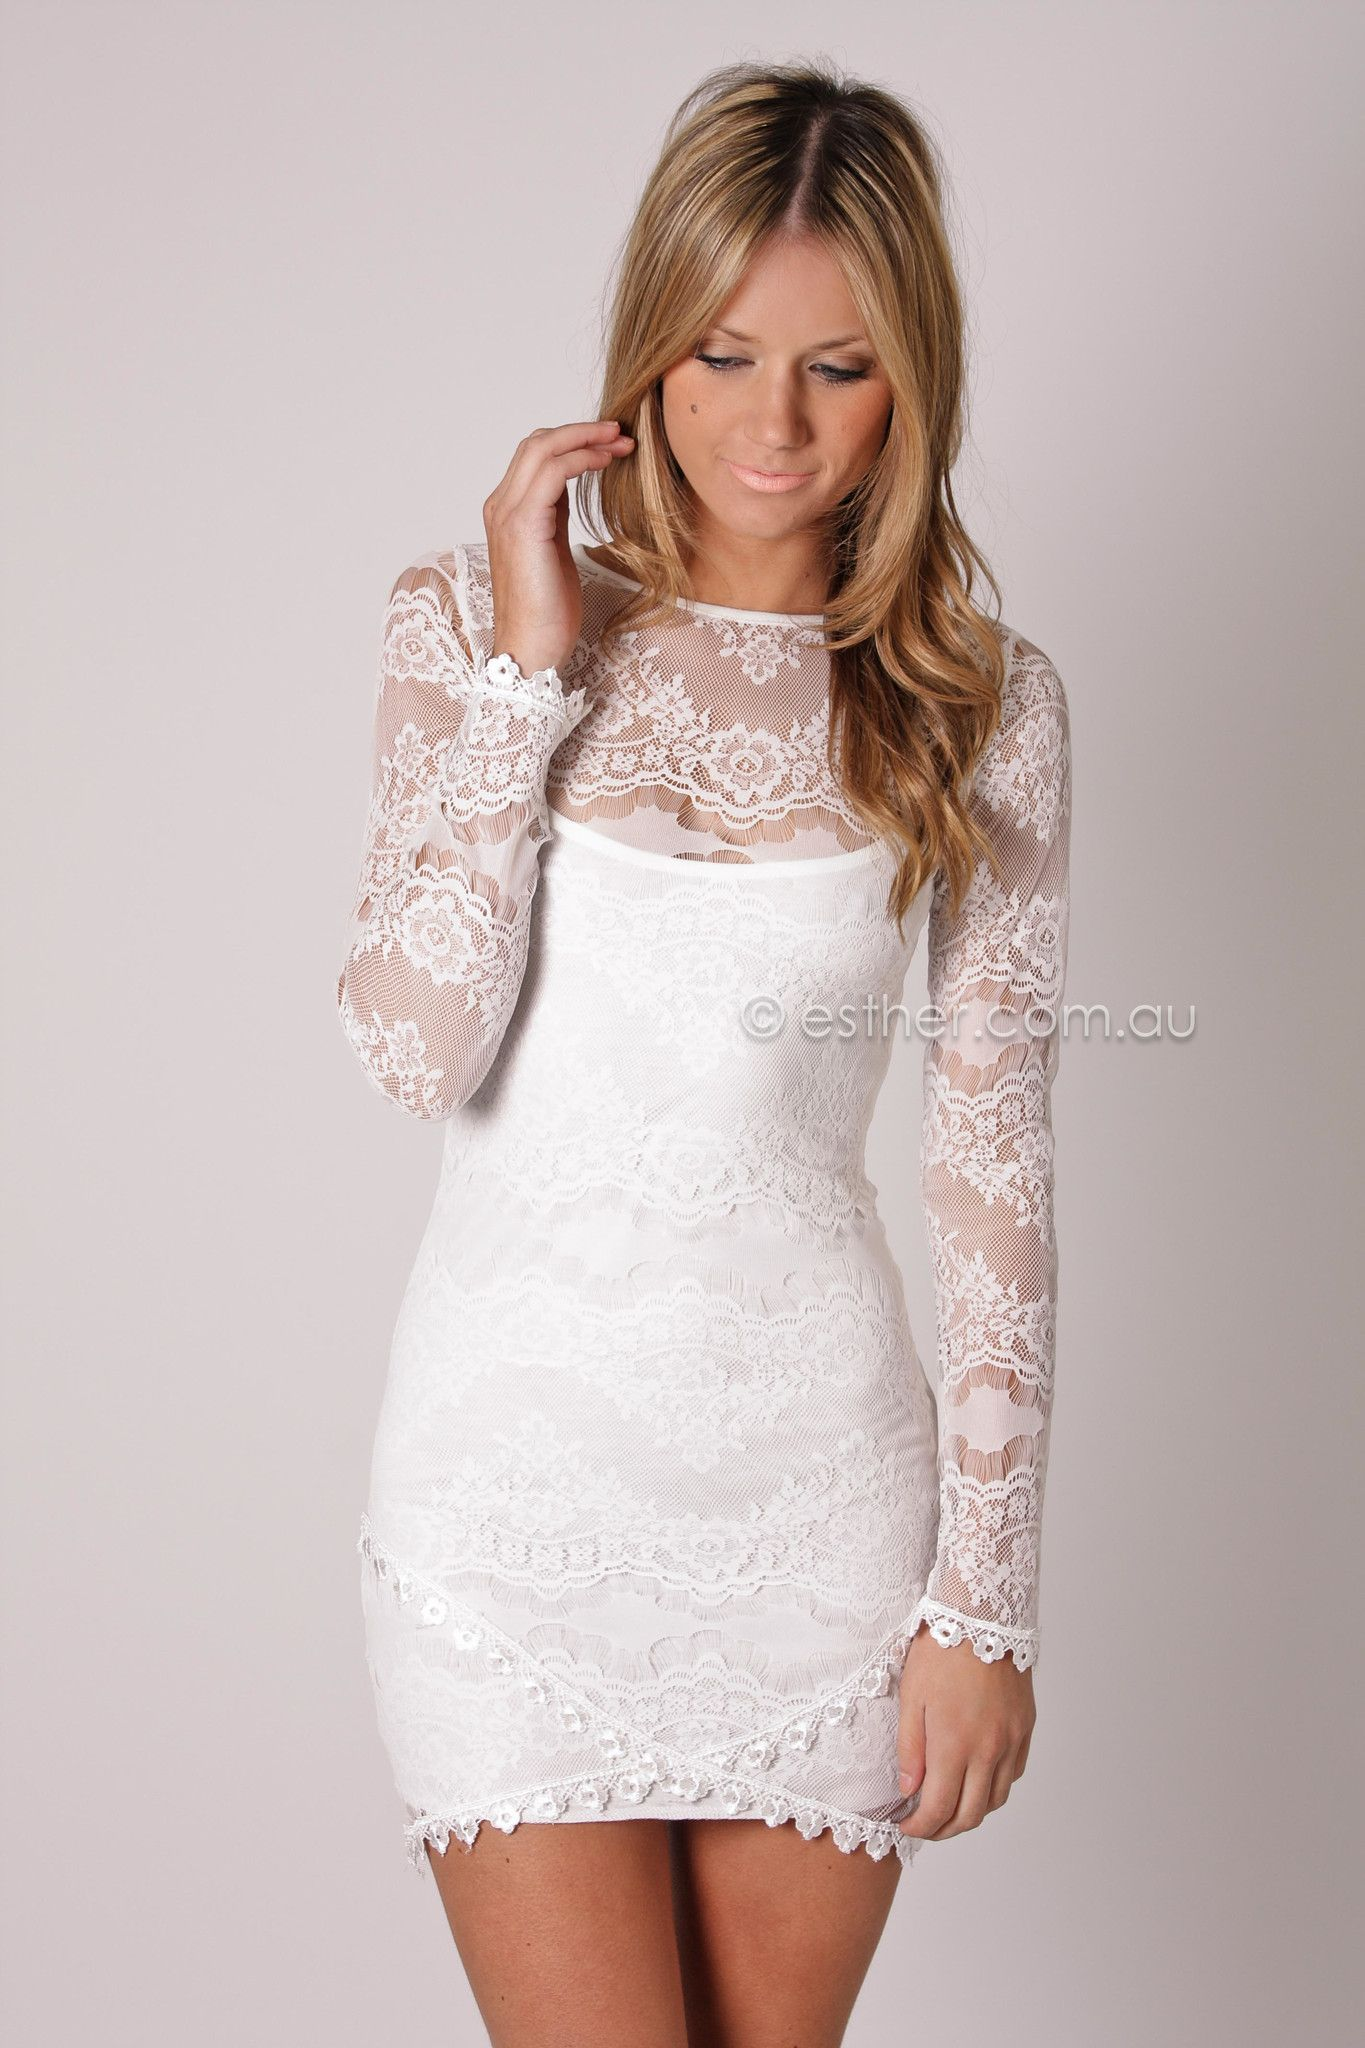 Lace dresses for wedding reception  white long sleeve lace dress  my style  Pinterest  White long